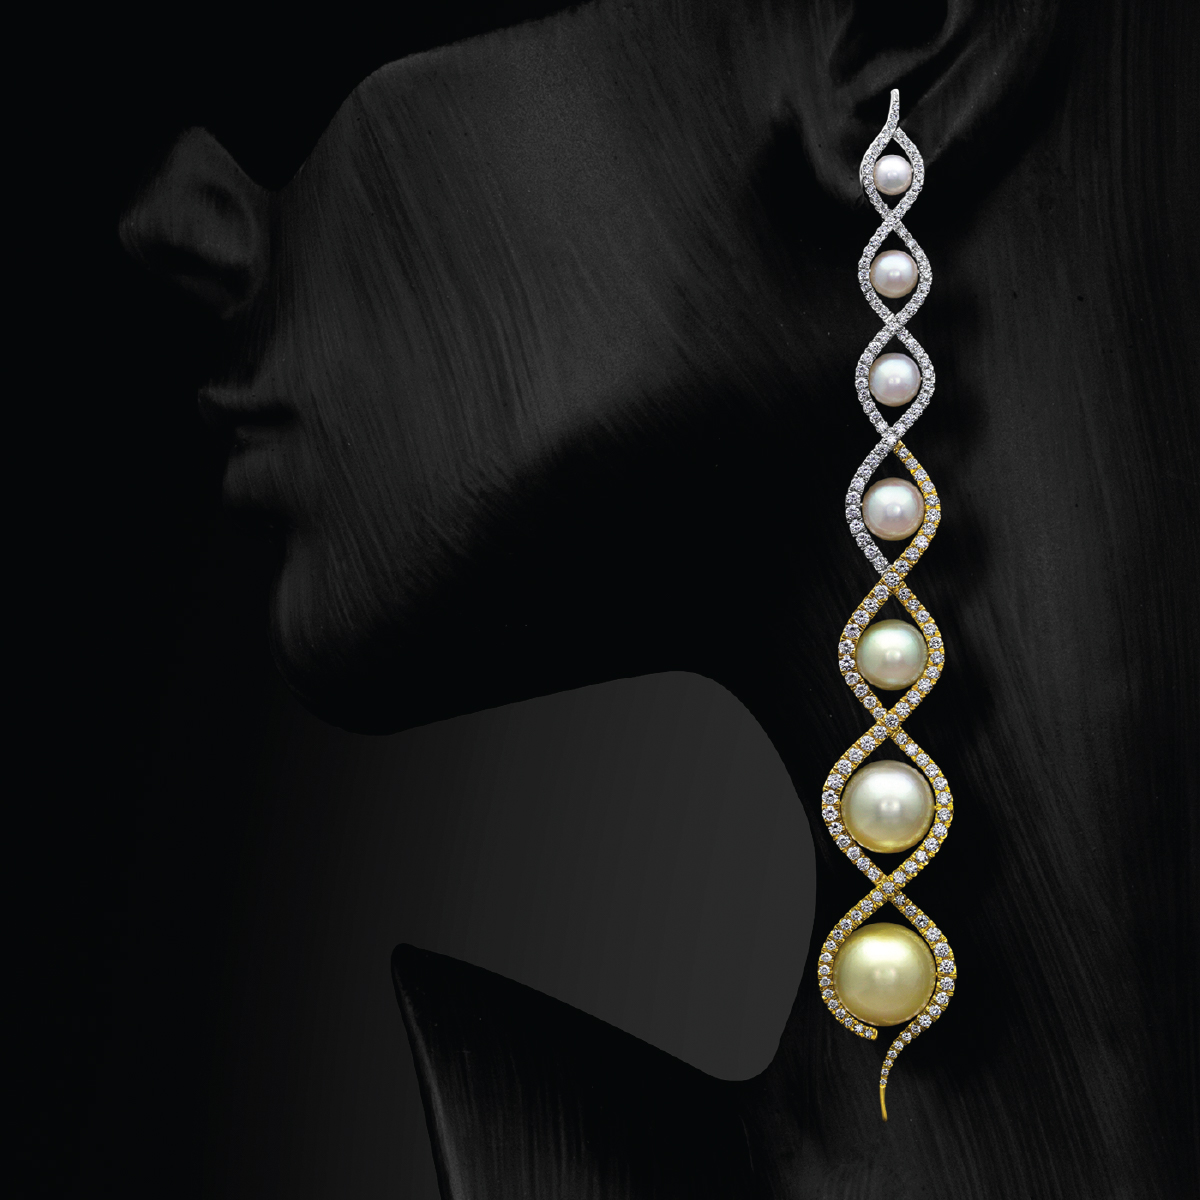 Rivoli Earrings Worn